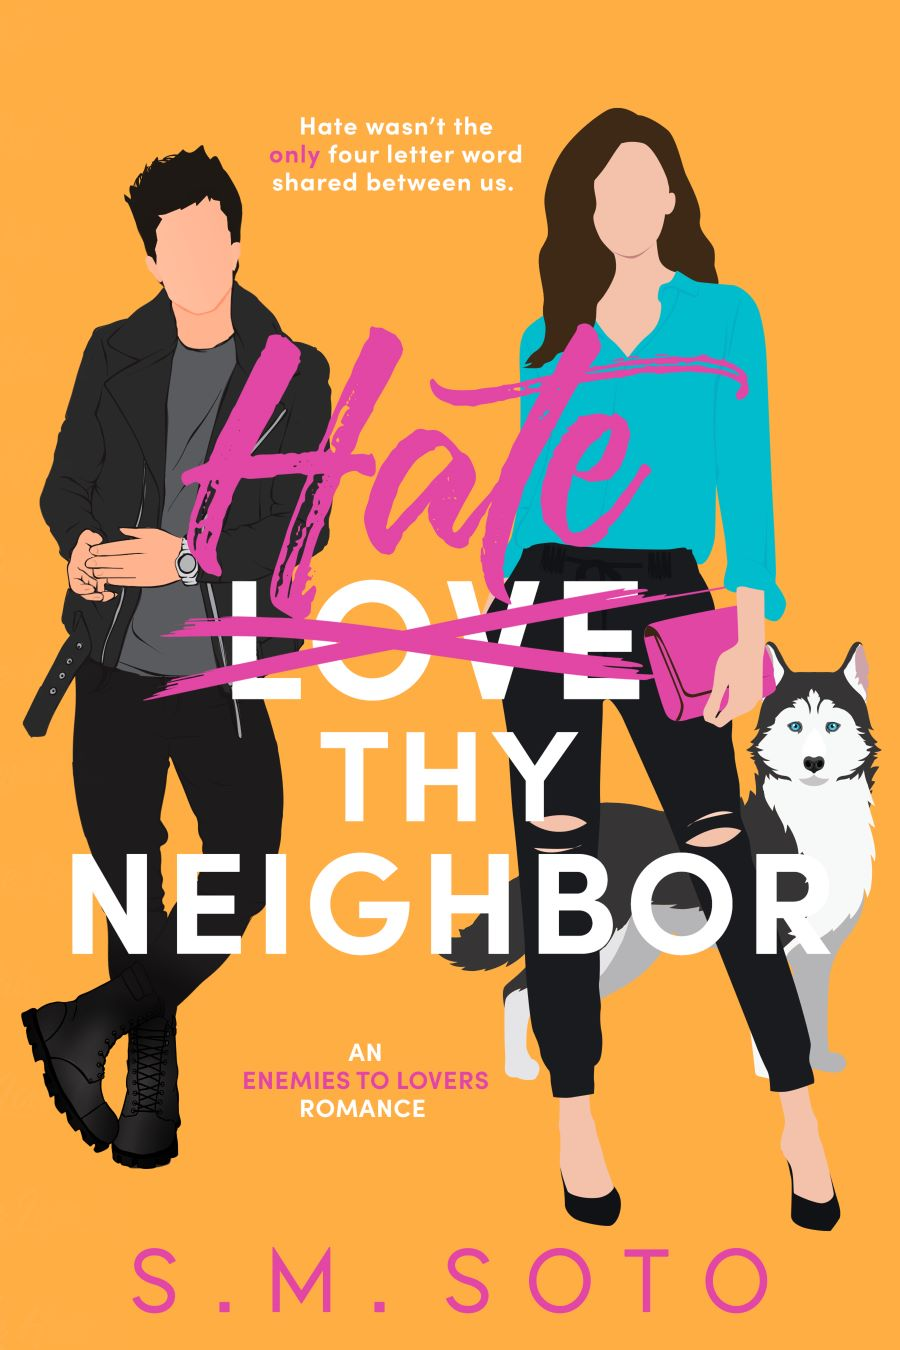 HateThyNeighbor_Ebook_Amazon